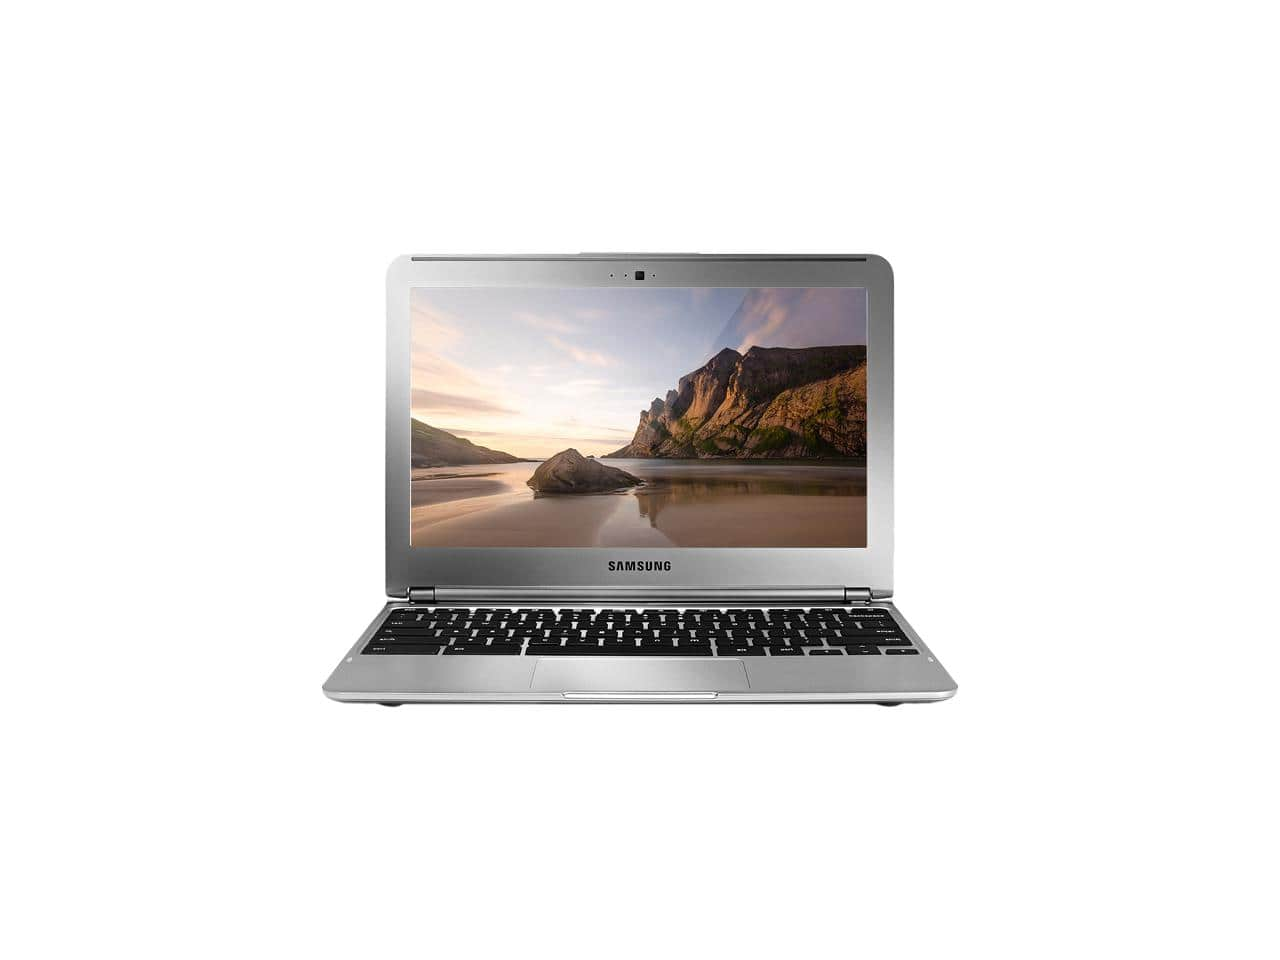 "$90 Refurb Samsung Chromebook Series 3 11.6"" 2GB Ram 16GB SD Android/Google Play Capable"